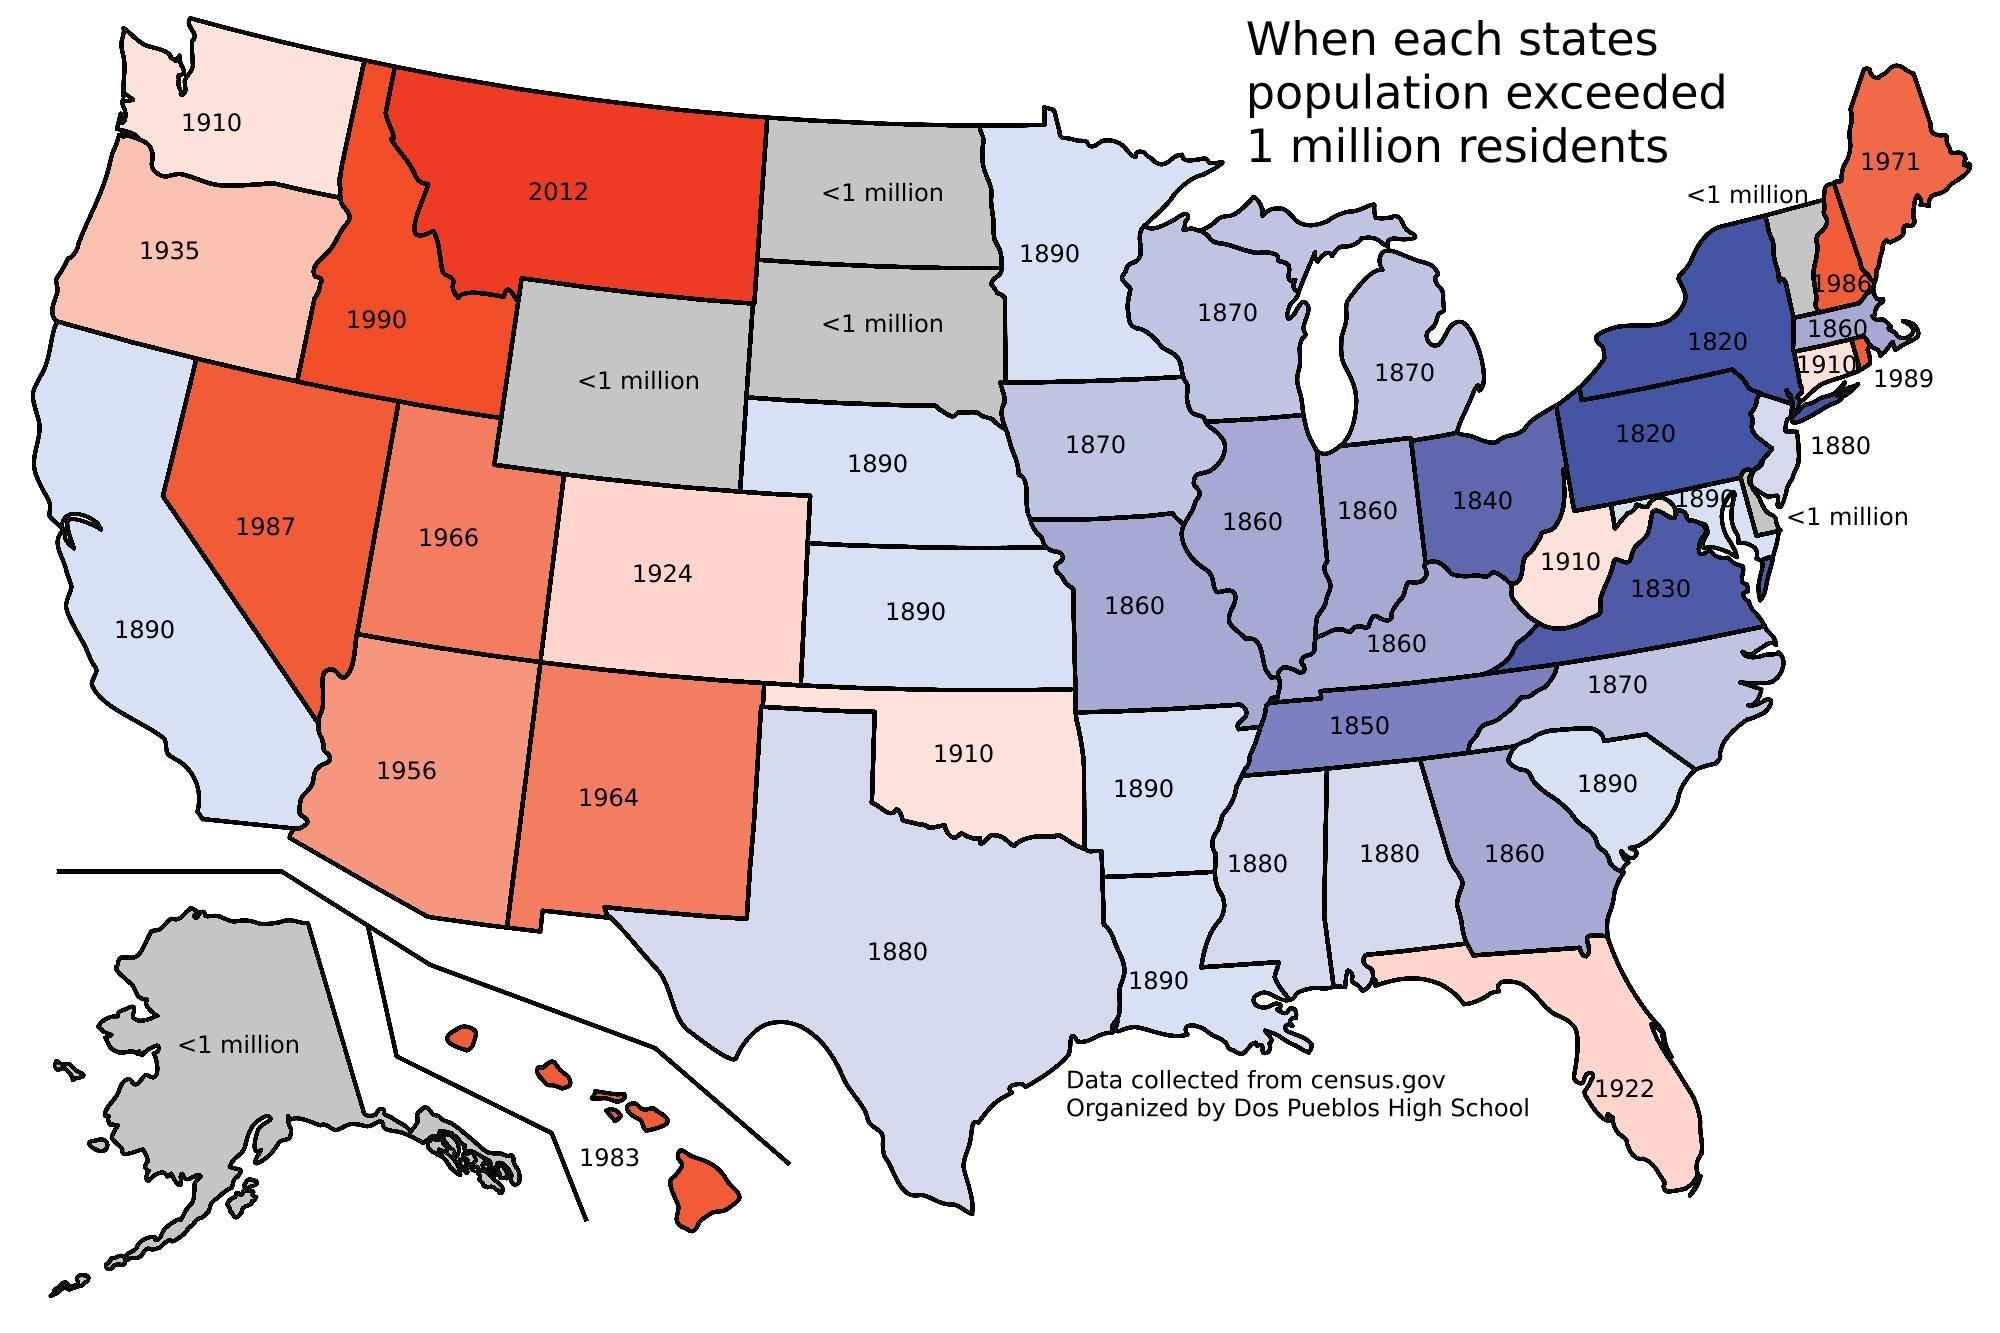 united states map population When Each U S States Population Exceeded 1 Million Residents